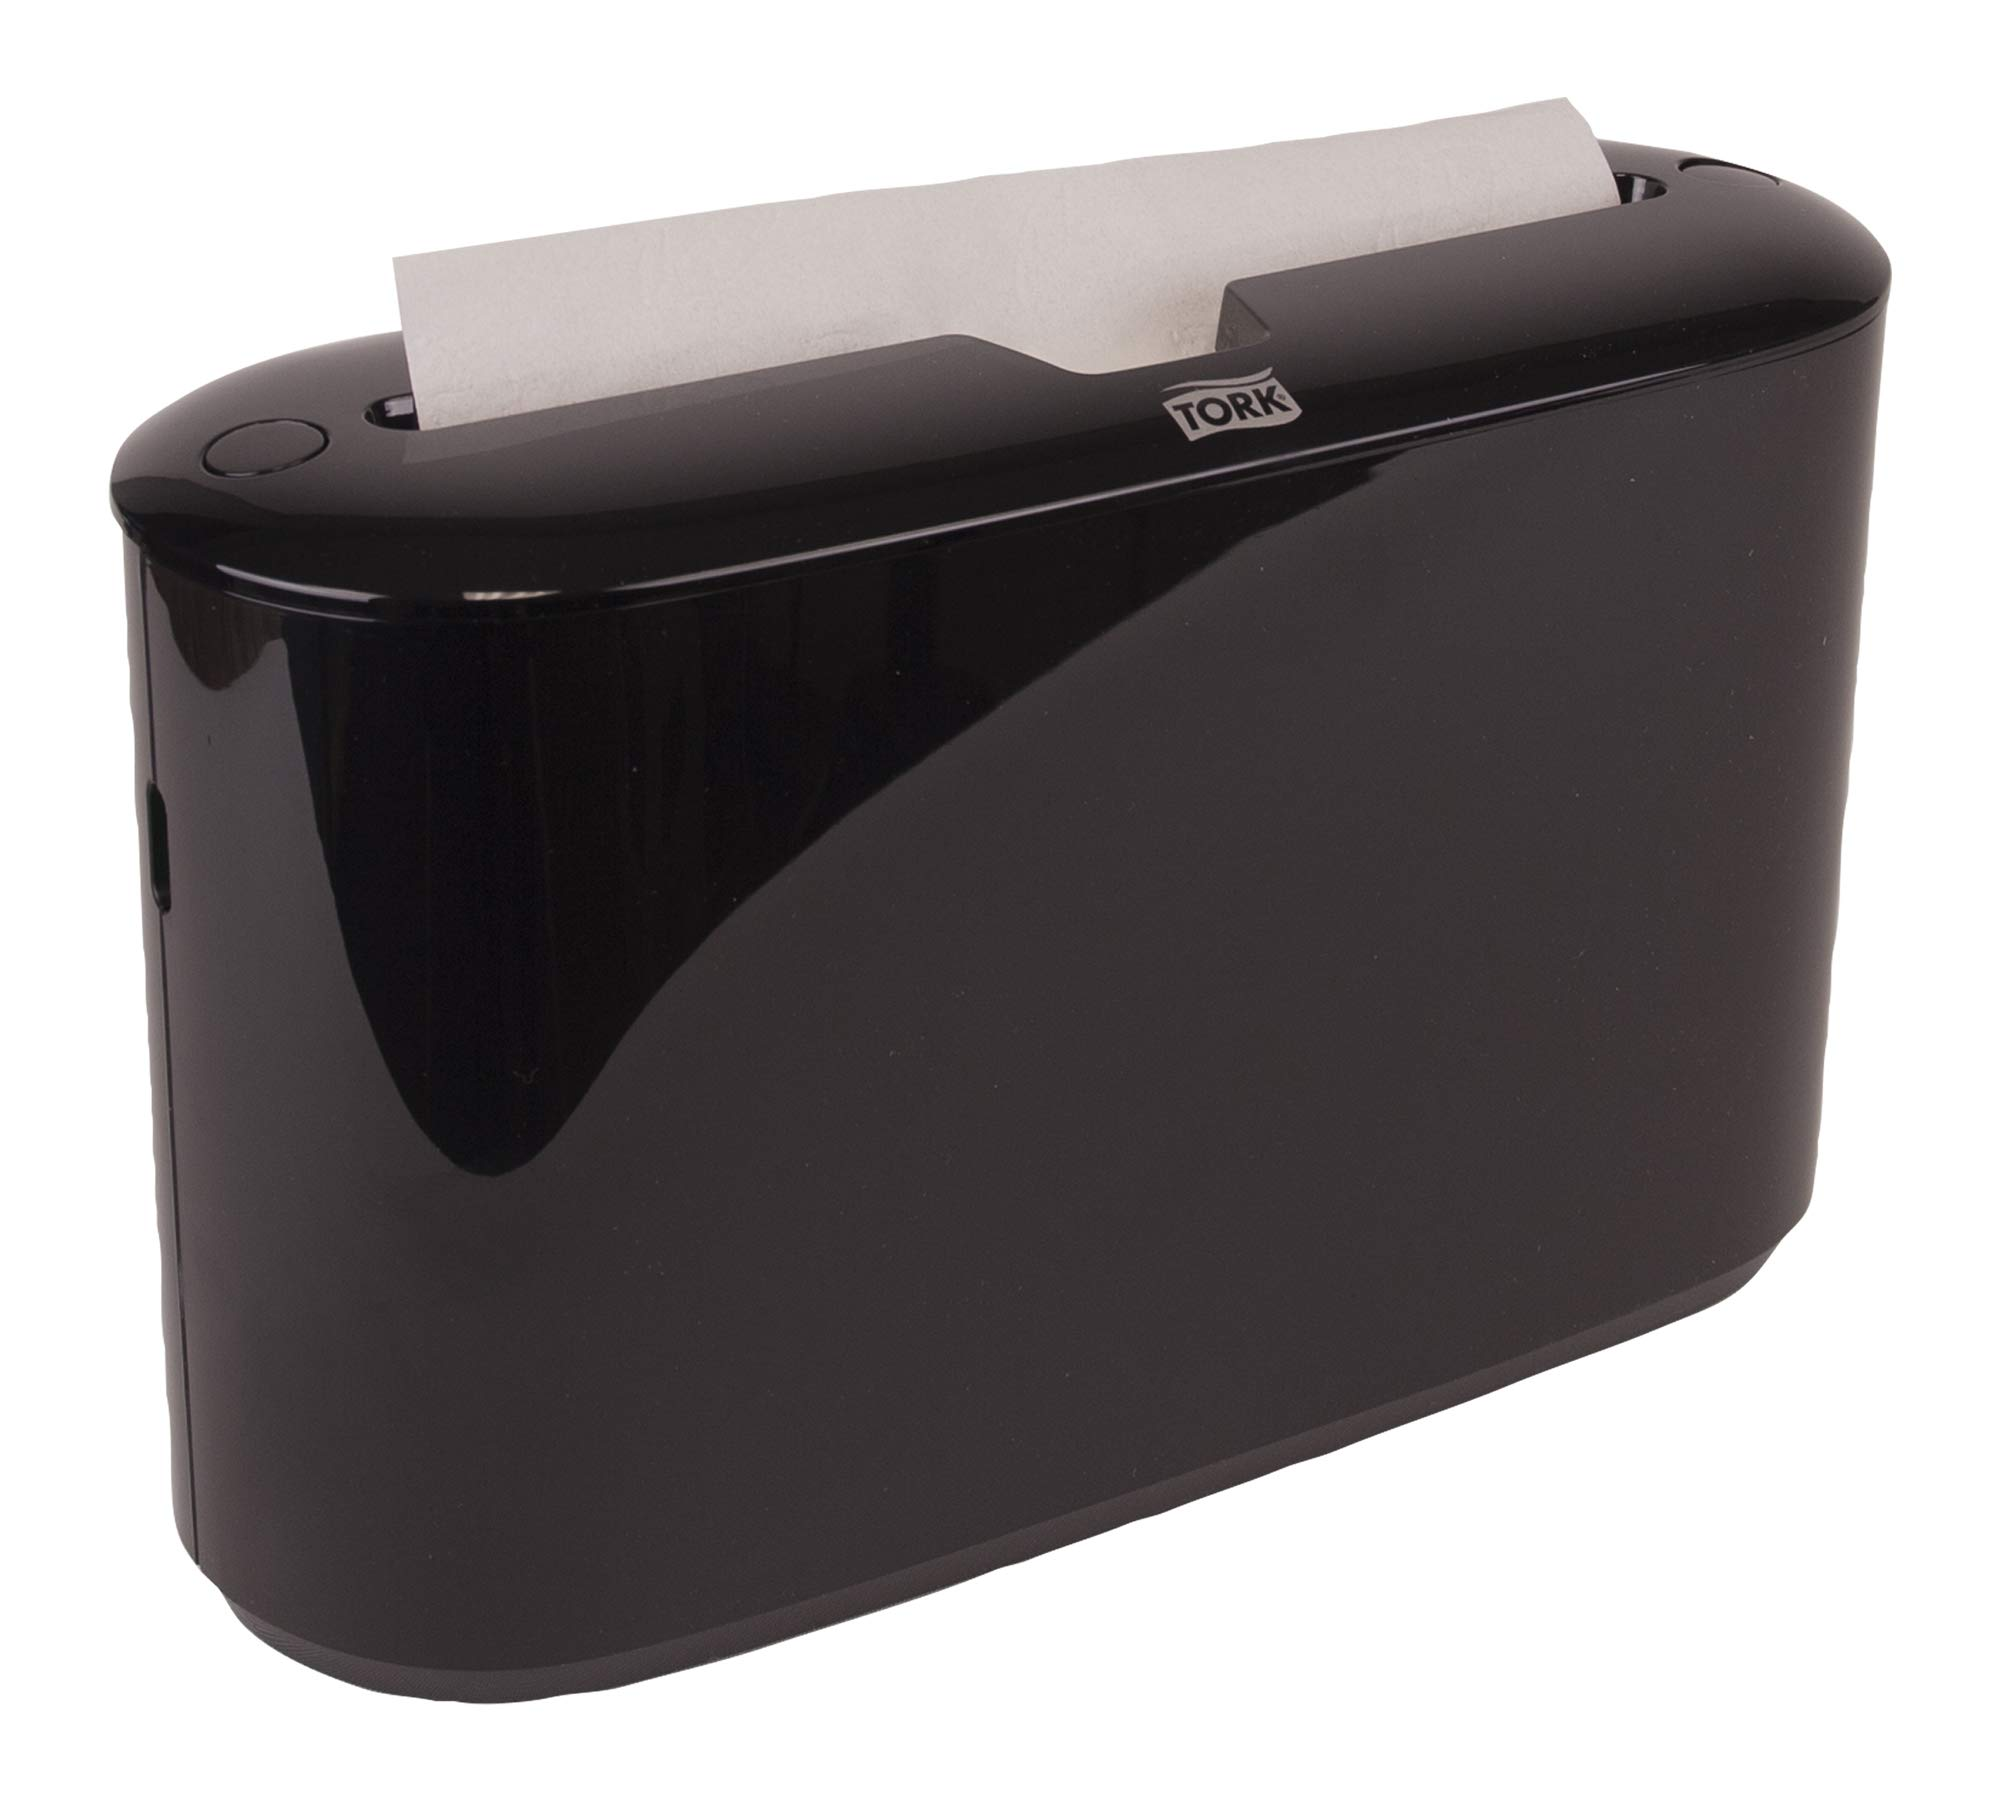 Tork Xpress 302028 Countertop Multifold Hand Towel Dispenser, Plastic, 7.92'' Height x 12.68'' Width x 4.56'' Depth, Black (Case of 1) For use with Tork MB550A, MB640, MB540A by Tork (Image #2)